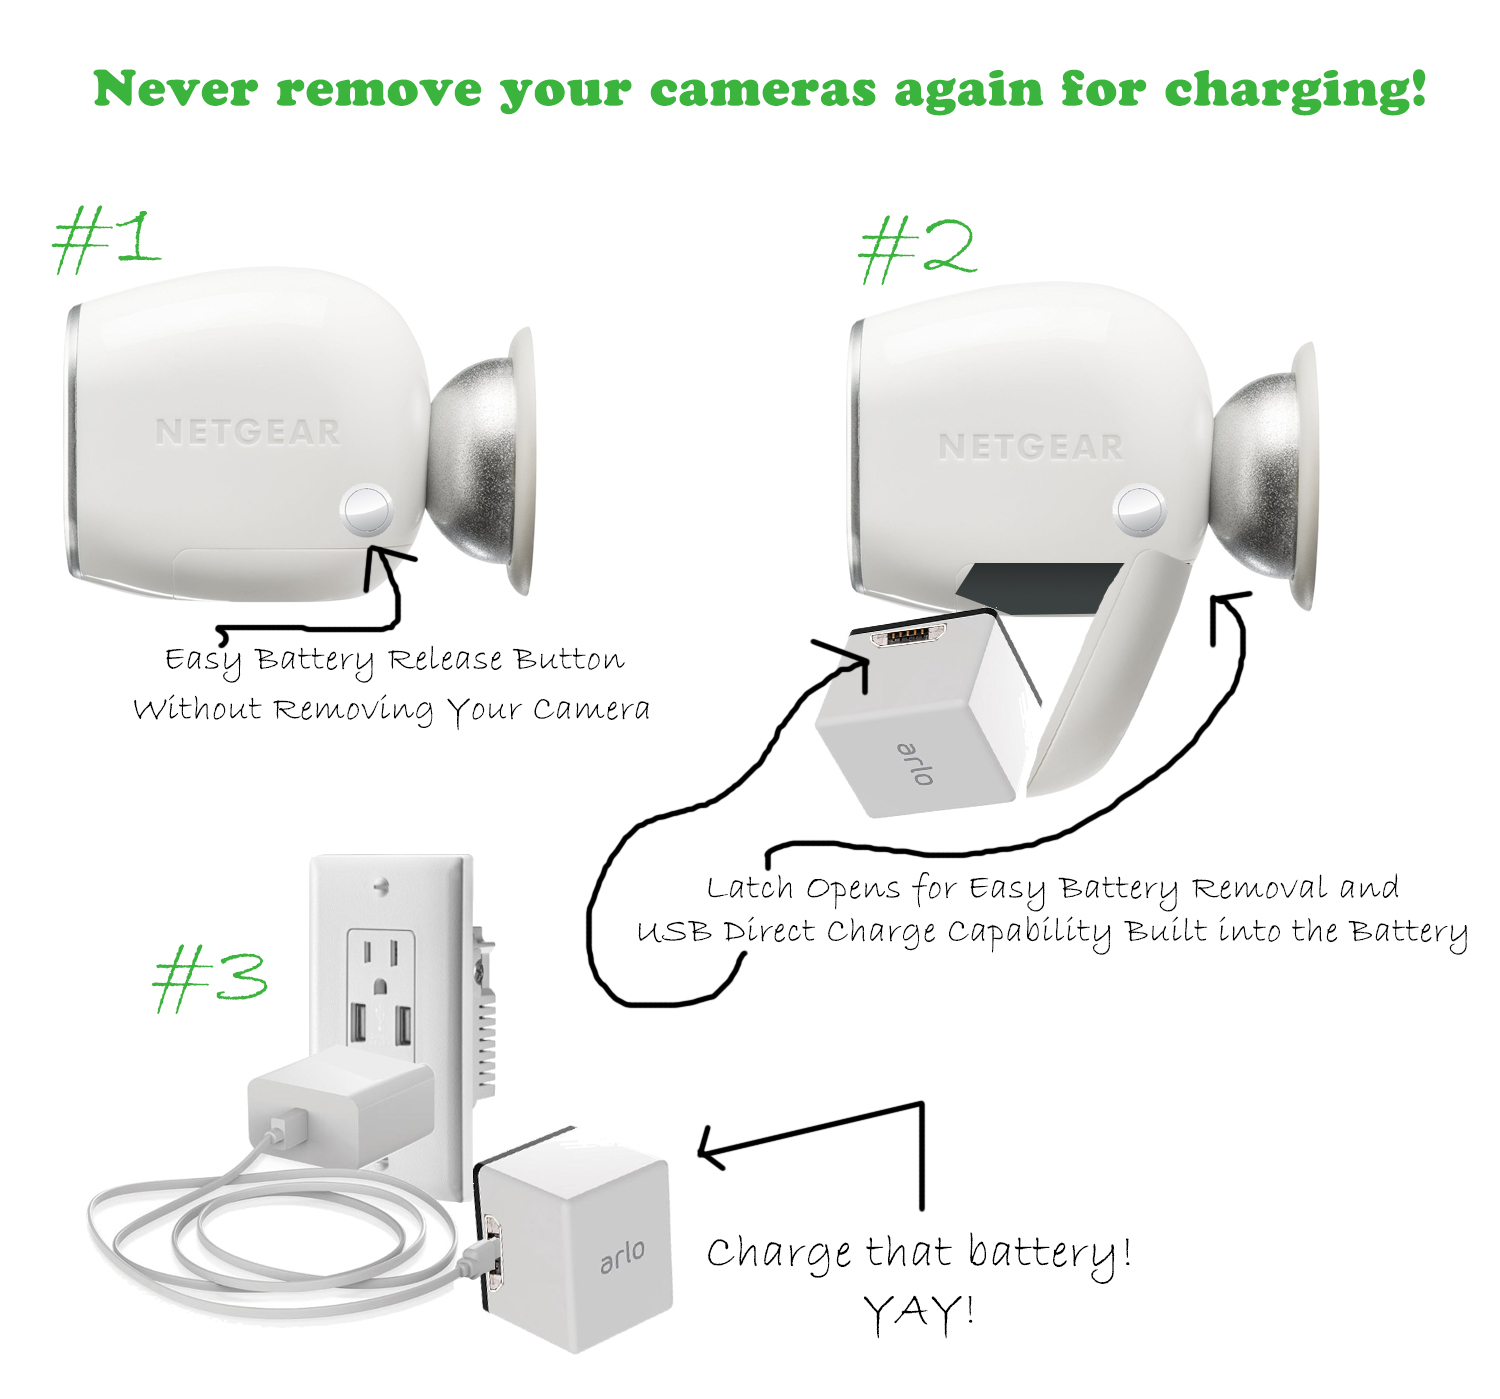 Arlo Easy Release With Direct Usb Battery Charge Netgear